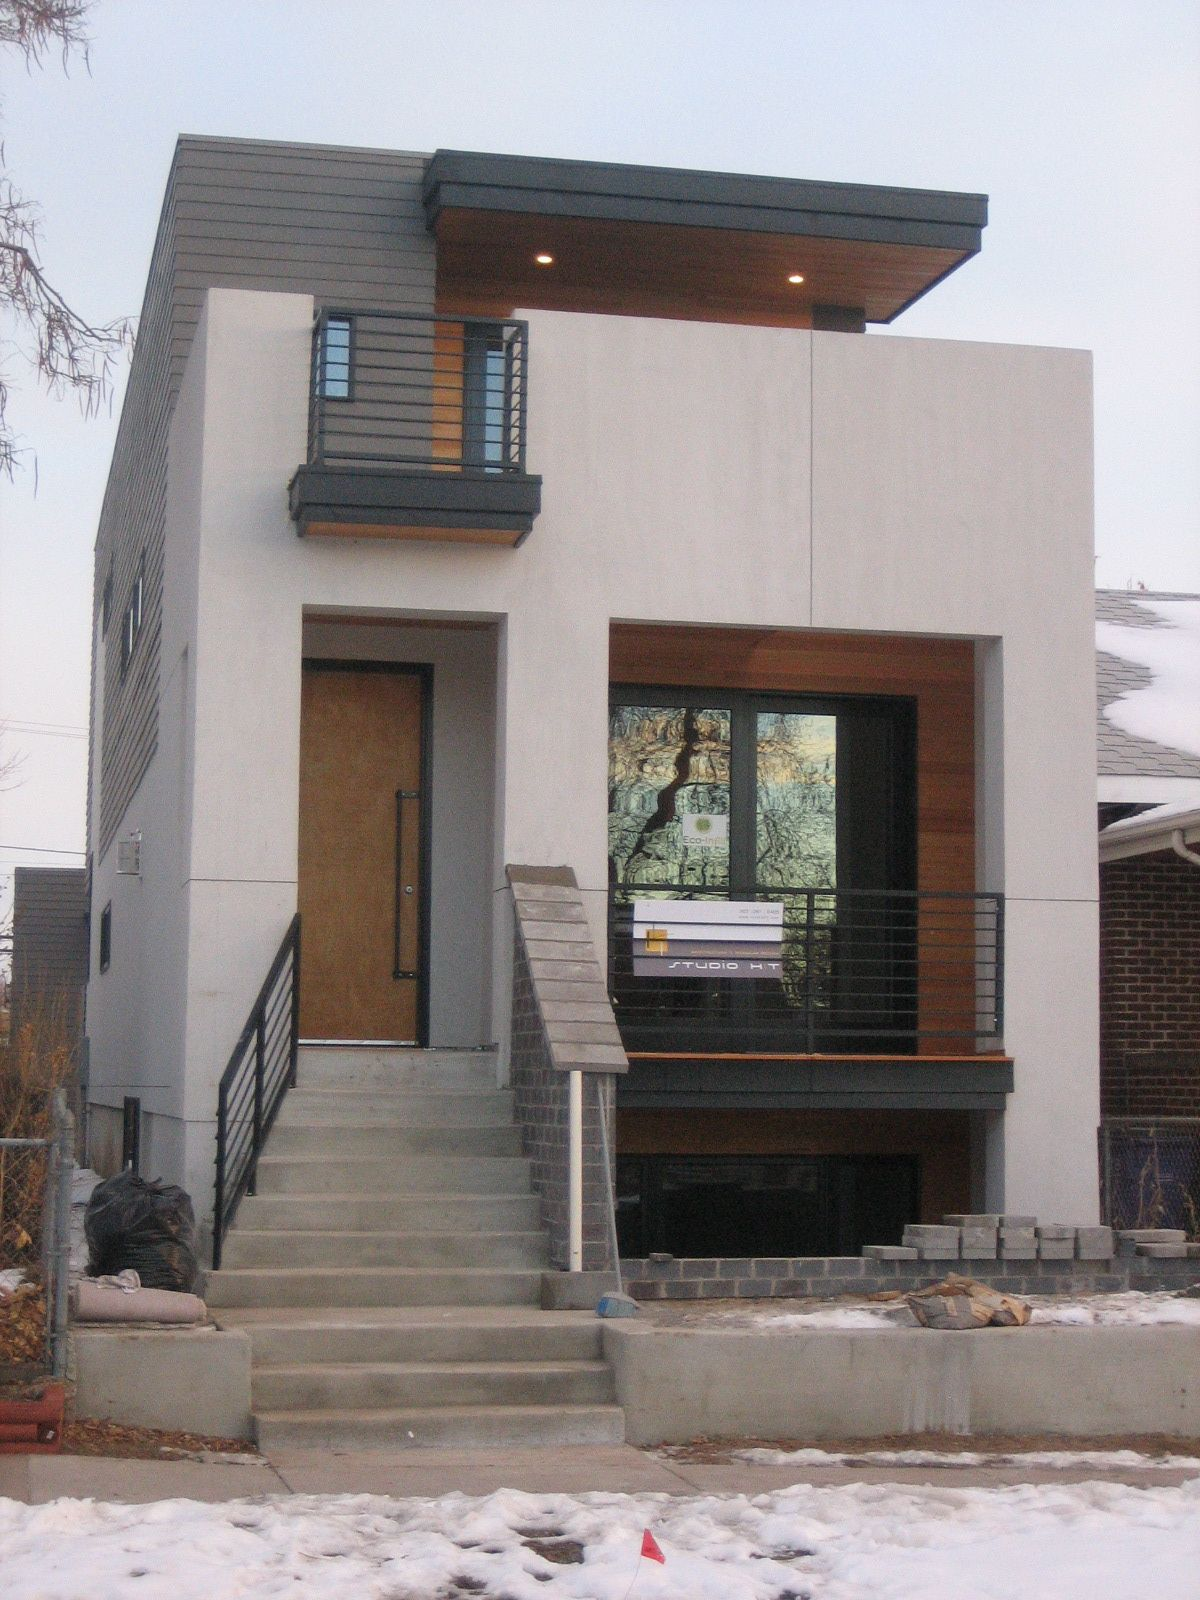 Ideas awesome minimalist prefabricated small houses with stairs entry areas also small balcony decors as modern small home exterior designs ideas